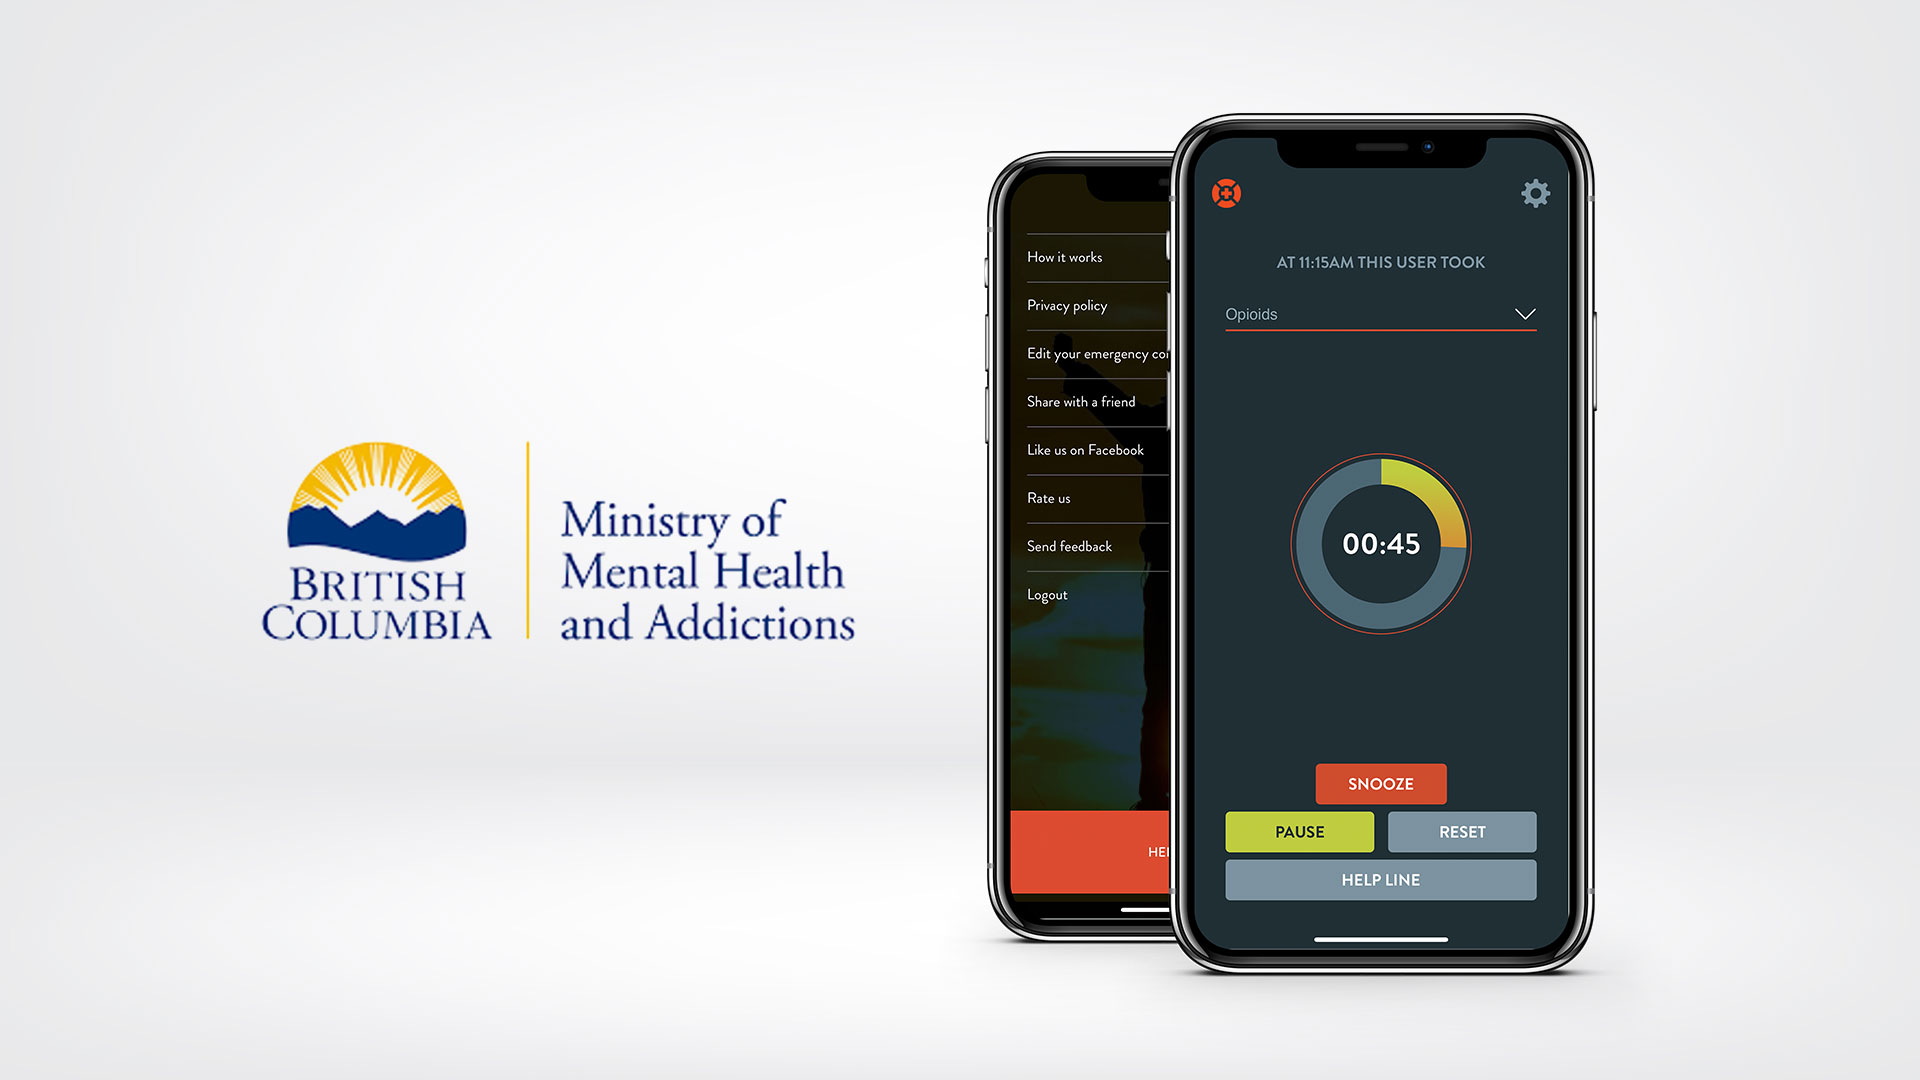 BC Ministry of Mental Health and Addictions Launching Lifeguard App